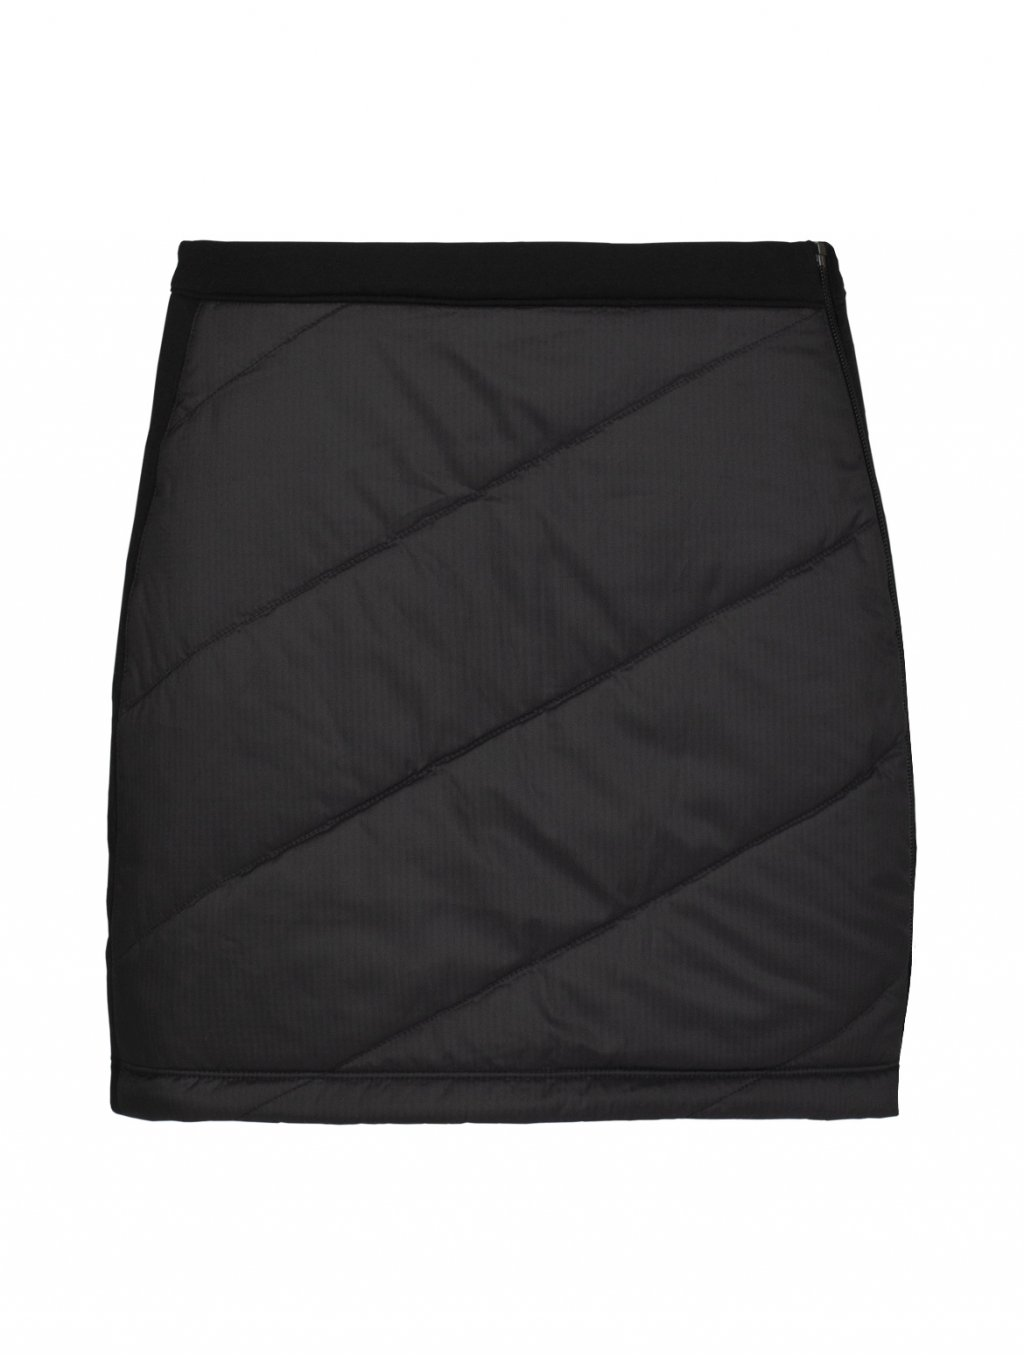 ICEBREAKER Wmns Helix Mini Skirt, Black